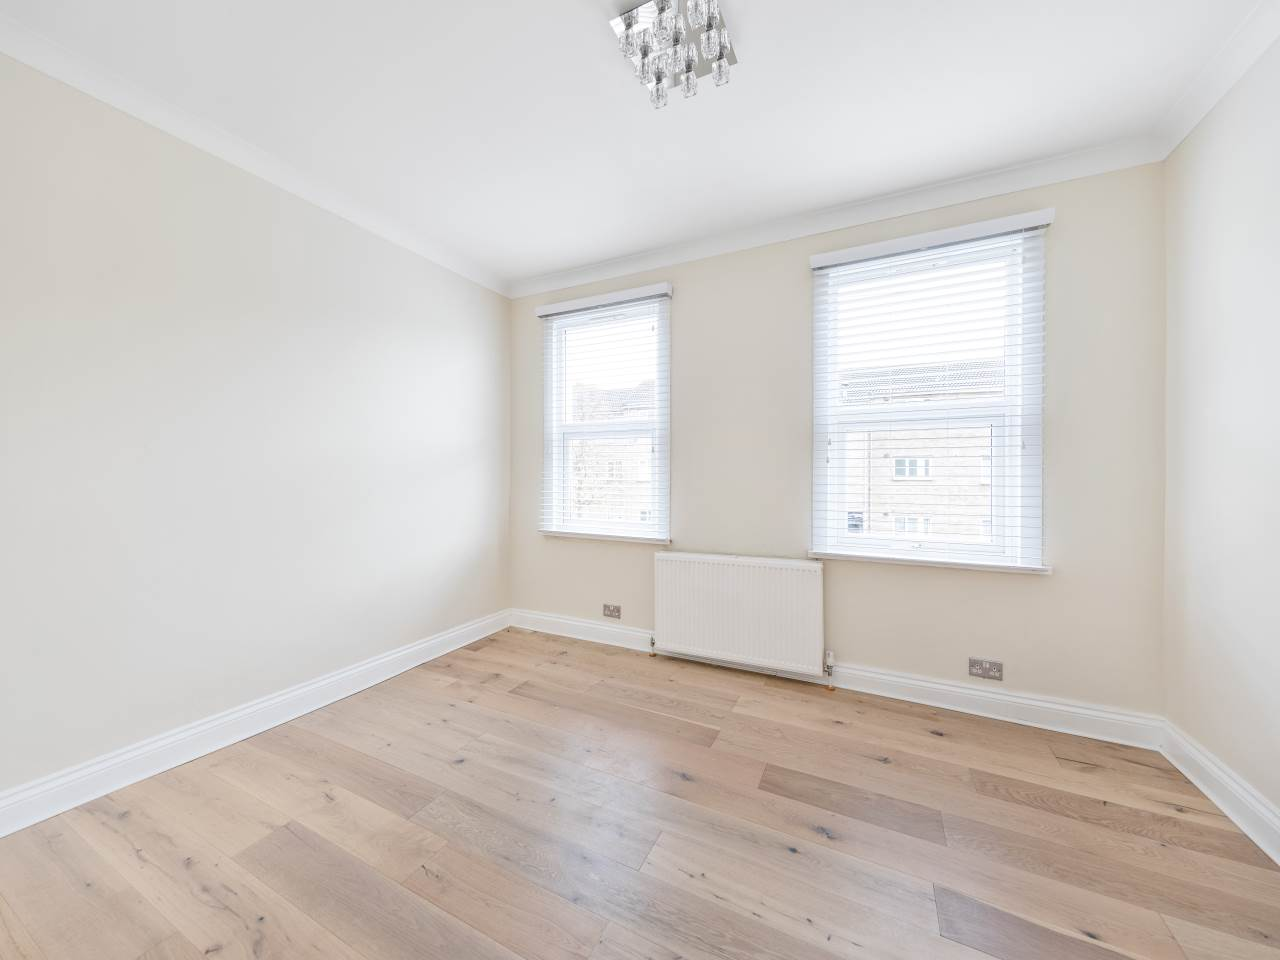 3 bed house for sale in Exning Road , Canning Town   - Property Image 8